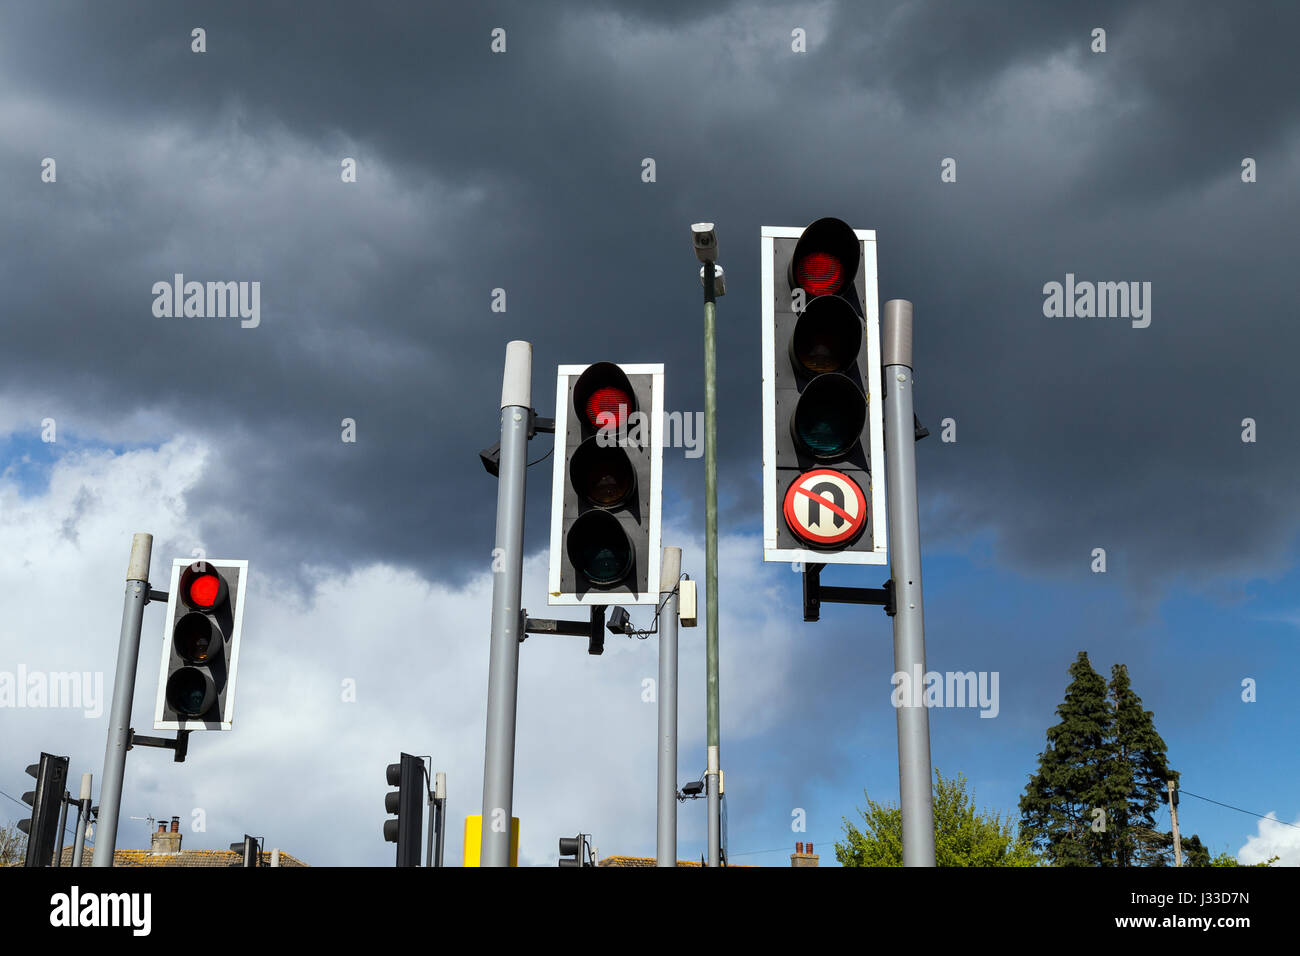 control, controlling, device, driving, england, english, flow, from, illumination, in, lamps, light, lights, proceeding, - Stock Image